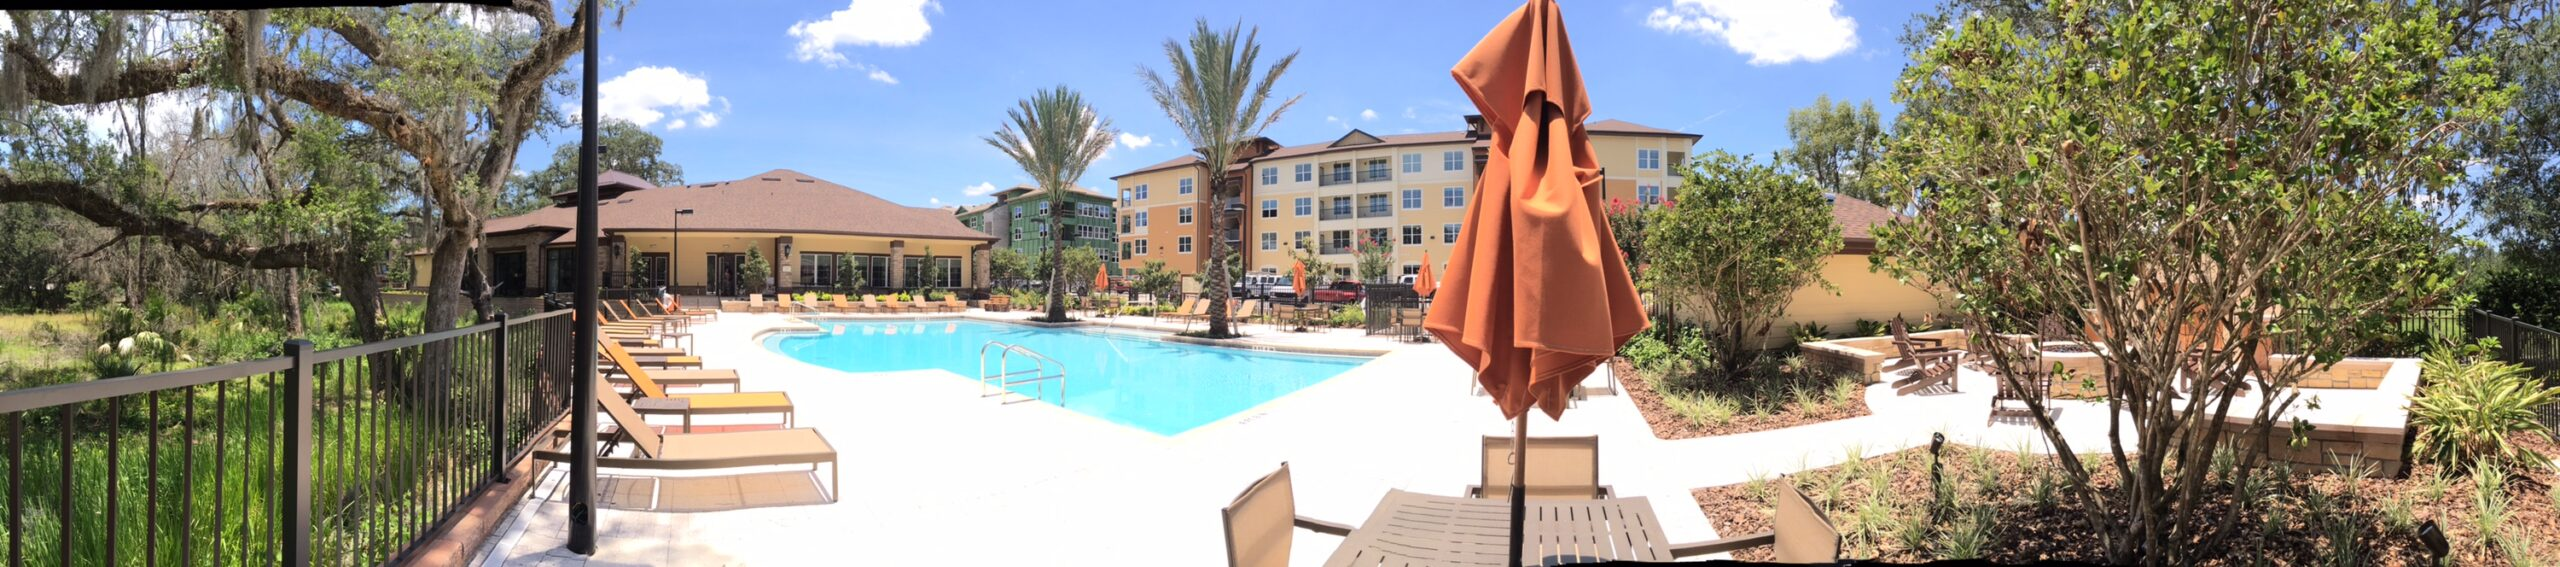 The Addison at Tampa Oaks Panoramic 0616